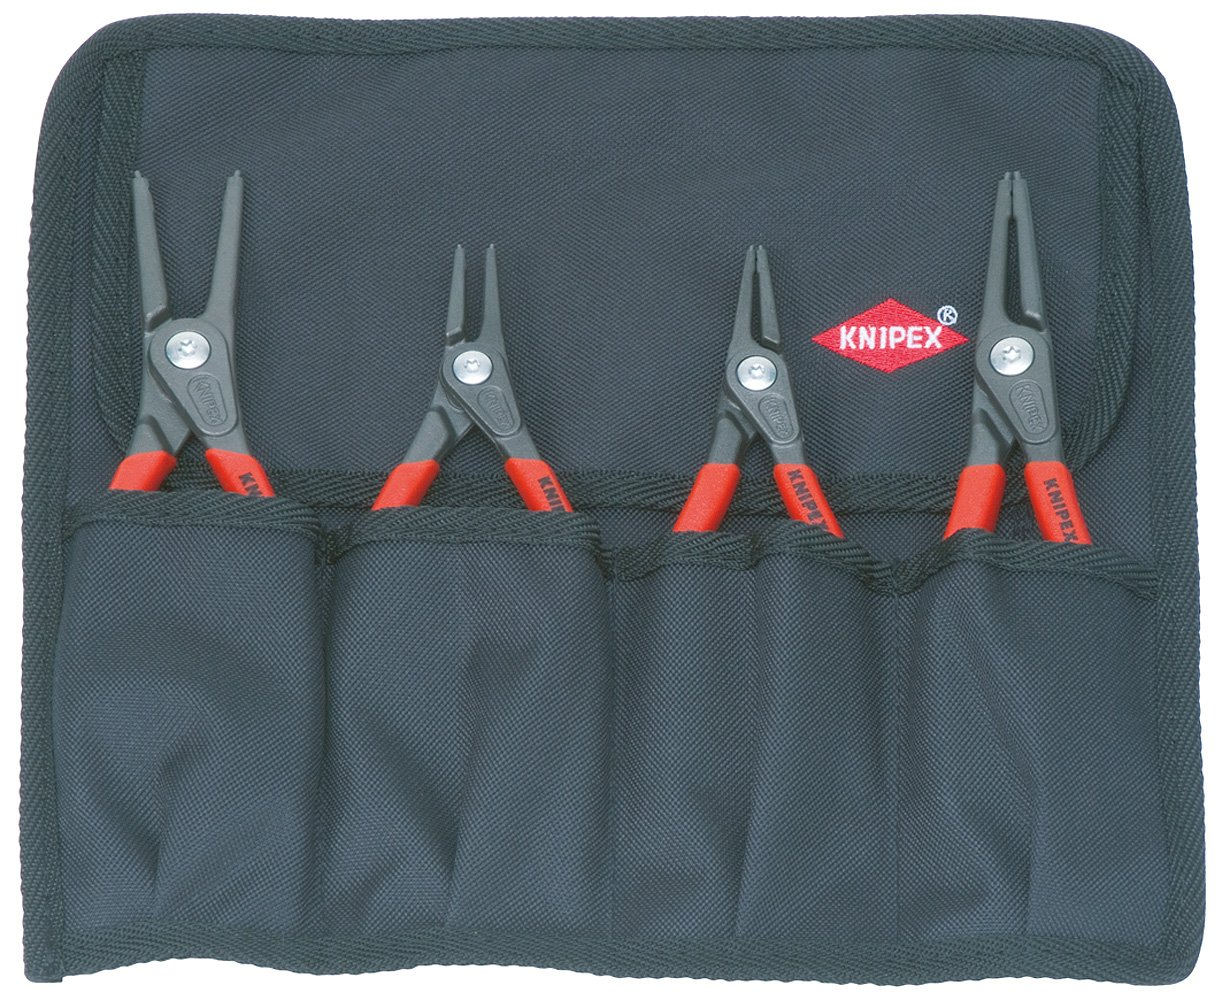 KNIPEX Tools 00 19 57 Precision Circlip Pliers Set in Tool Roll (4-Piece), 5 Pack by KNIPEX Tools